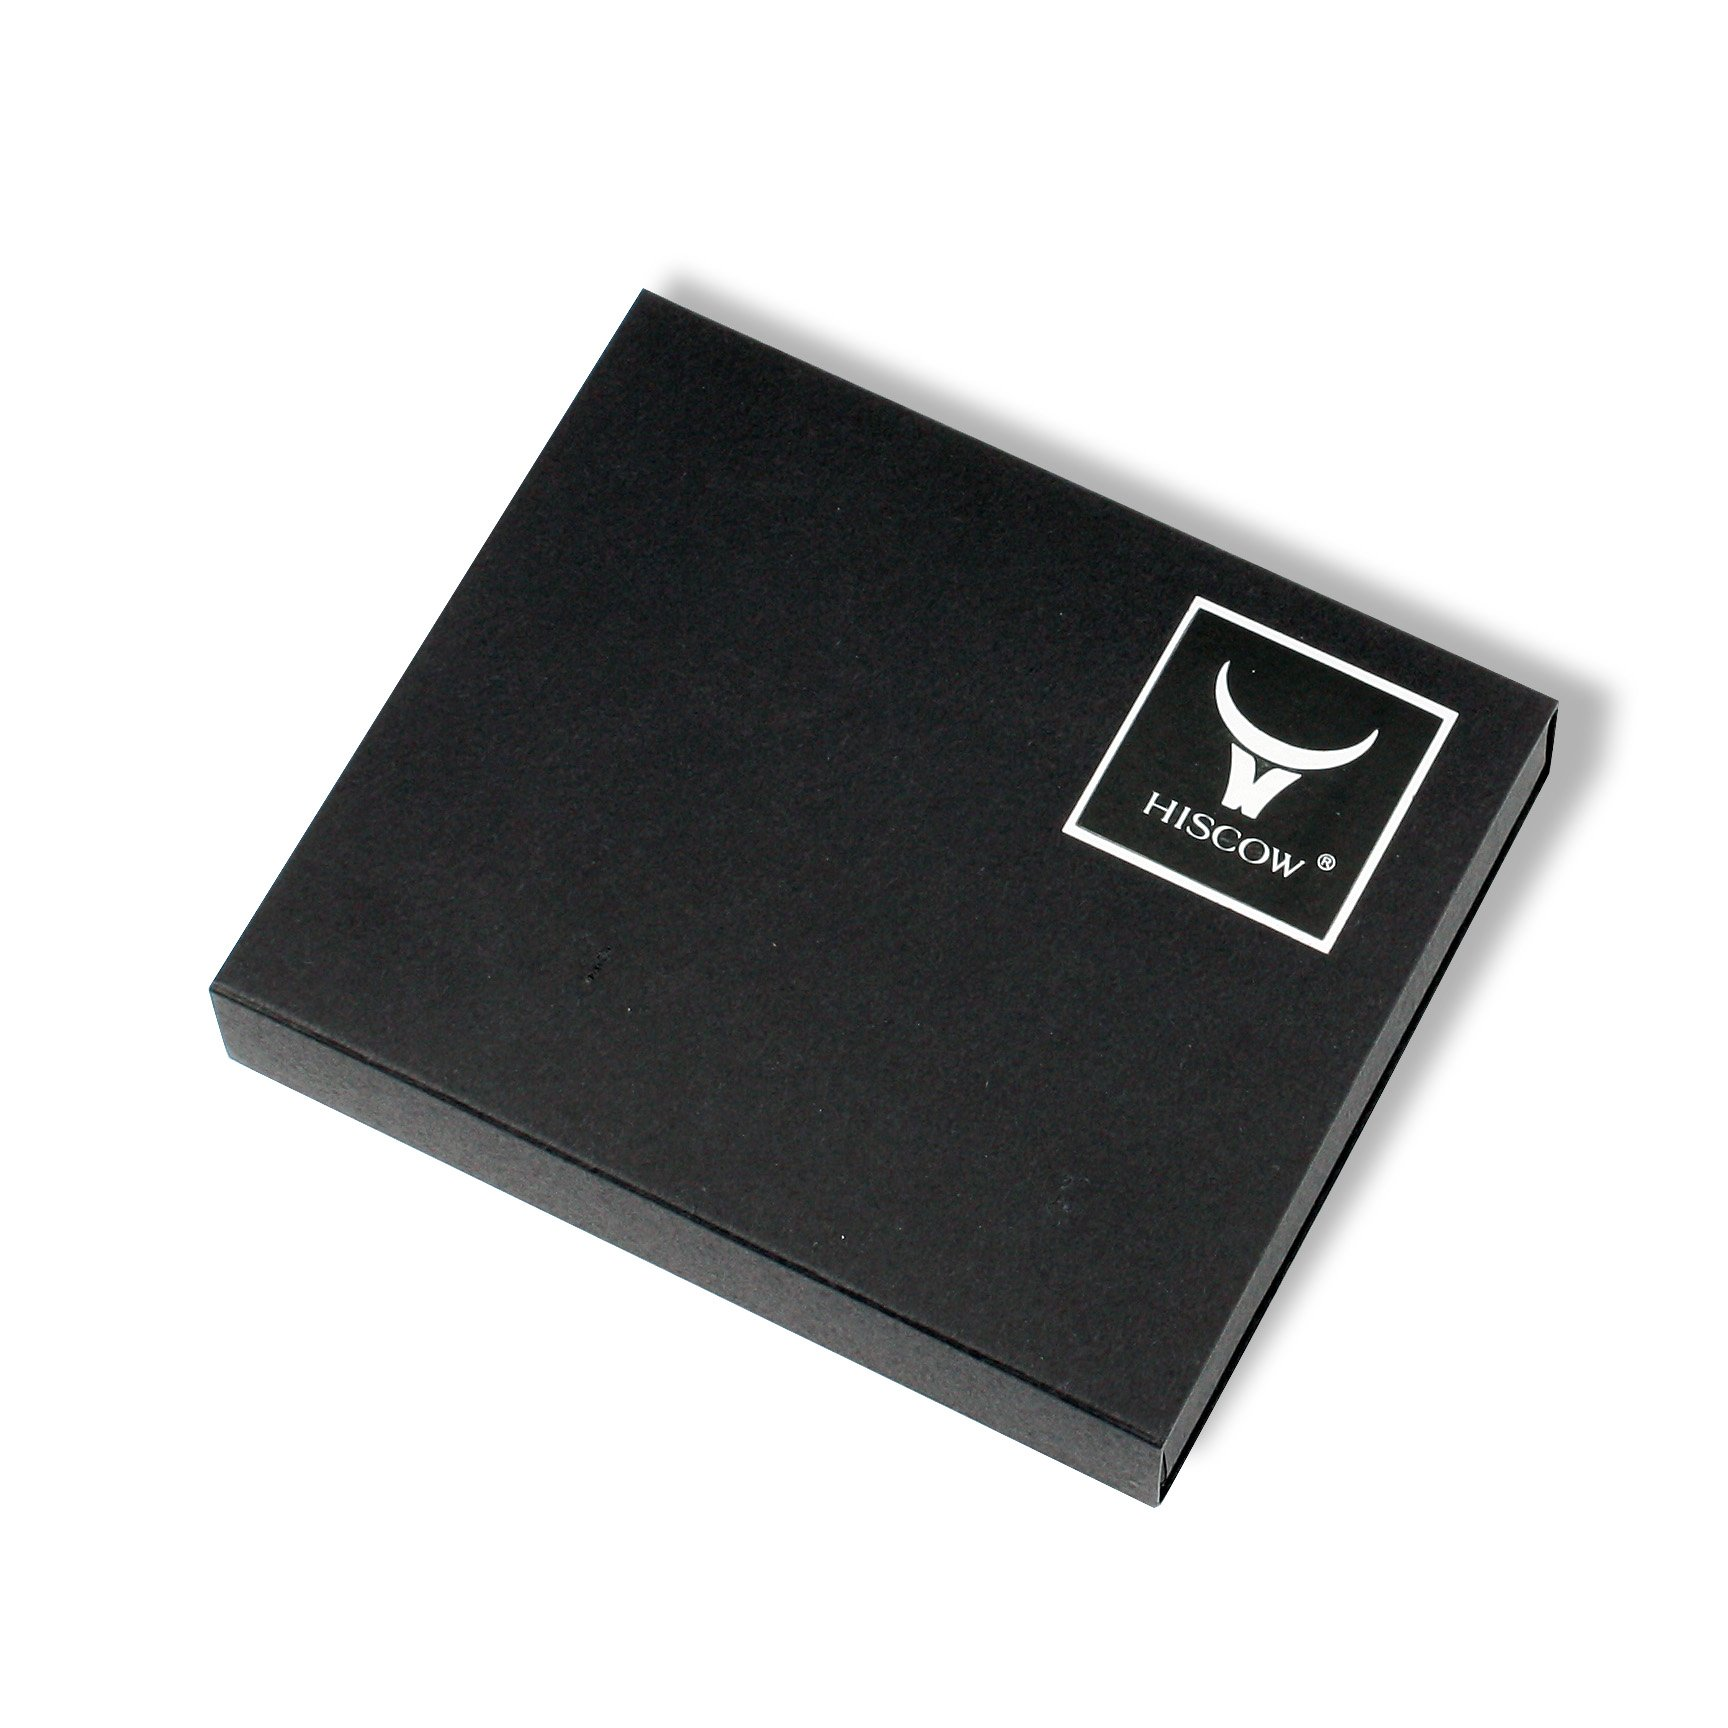 HISCOW Men's Business Card Holder with Large Compartment - Italian Calfskin by HISCOW (Image #6)